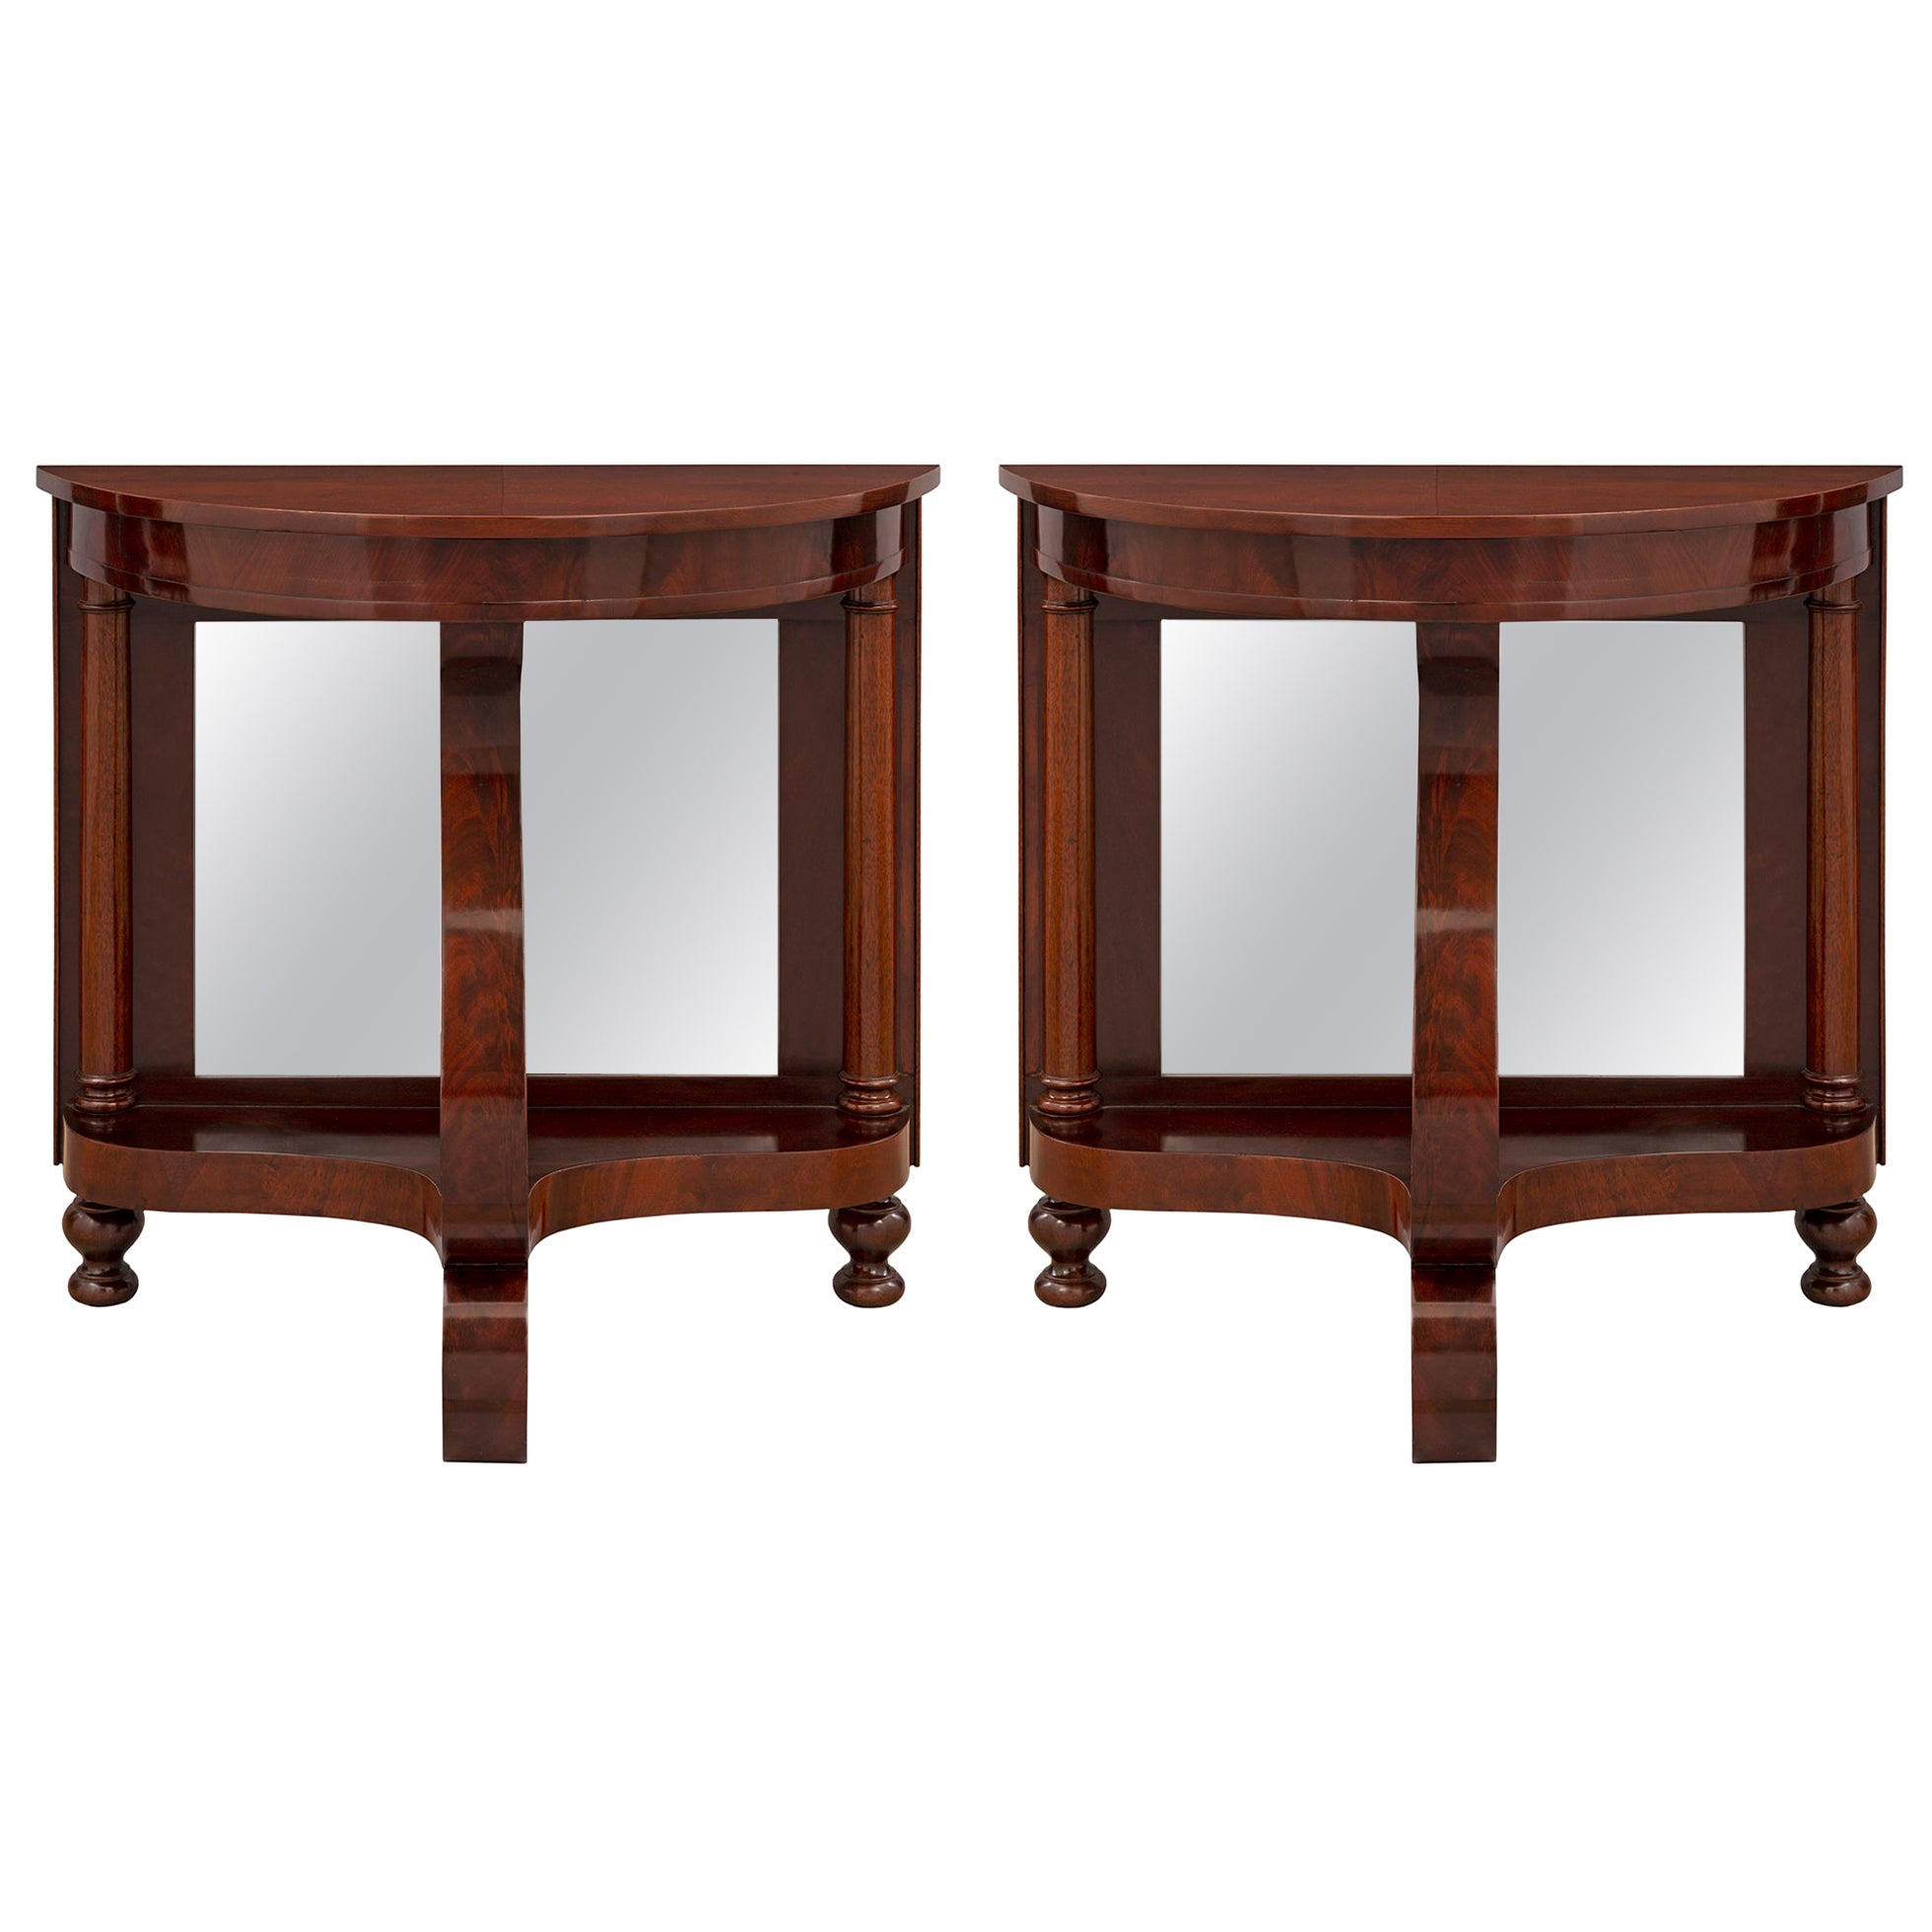 Pair of Late 19th Century French Empire Style Mahogany, Demilune Consoles